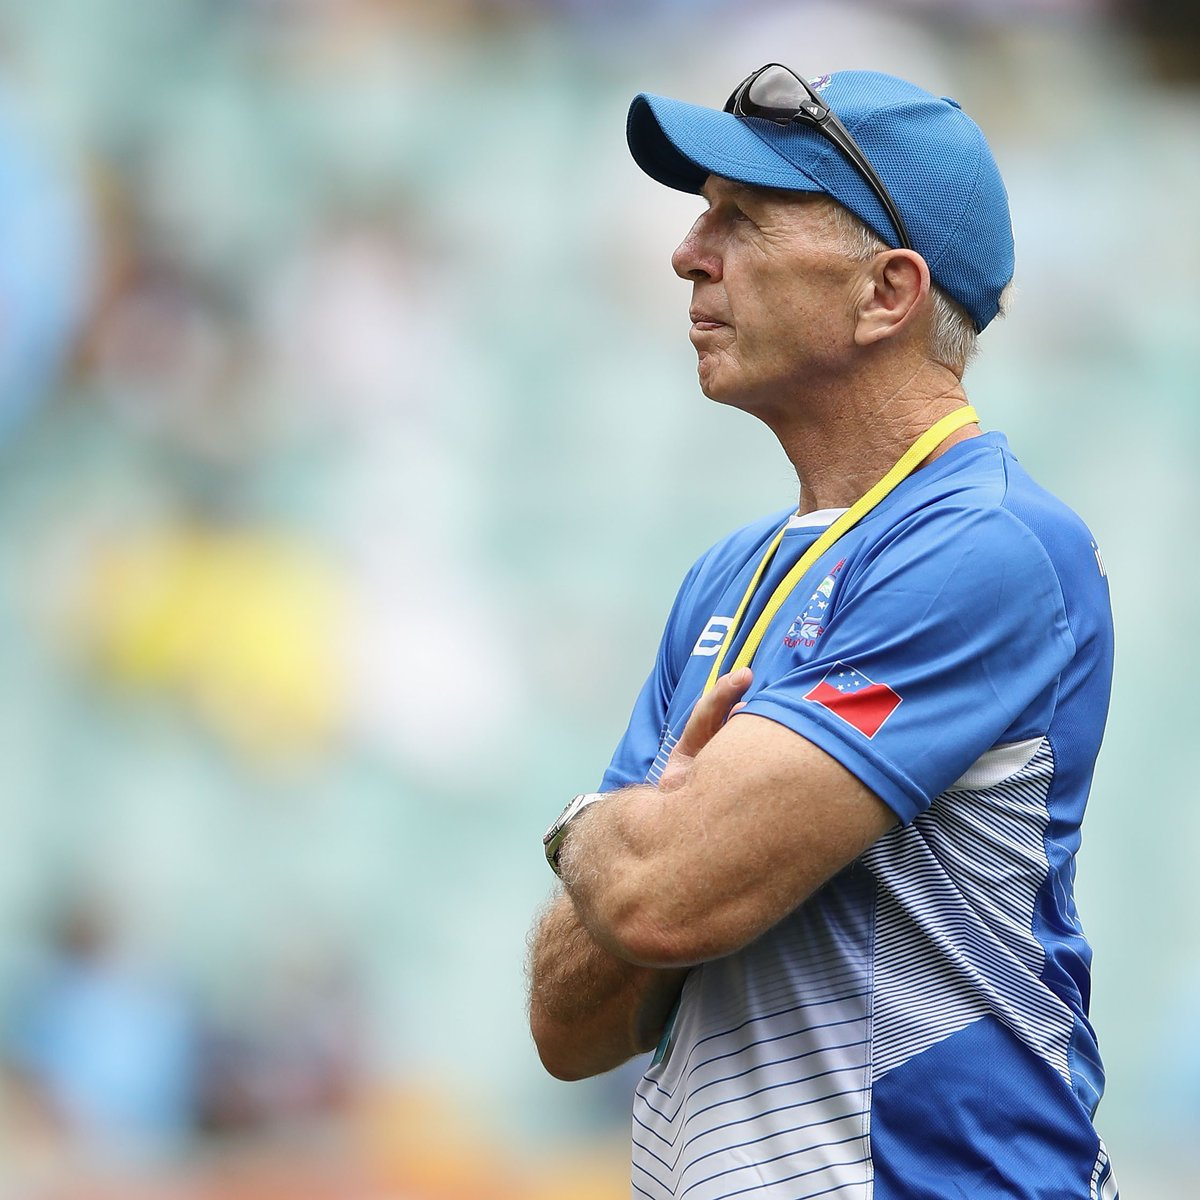 Gordon Tietjens has announced his departure as Samoa Sevens head coach 🇼🇸  The #WorldRugbyHOF inductee has been at the helm since late 2016 🏉 https://t.co/6R4GNmnjGw